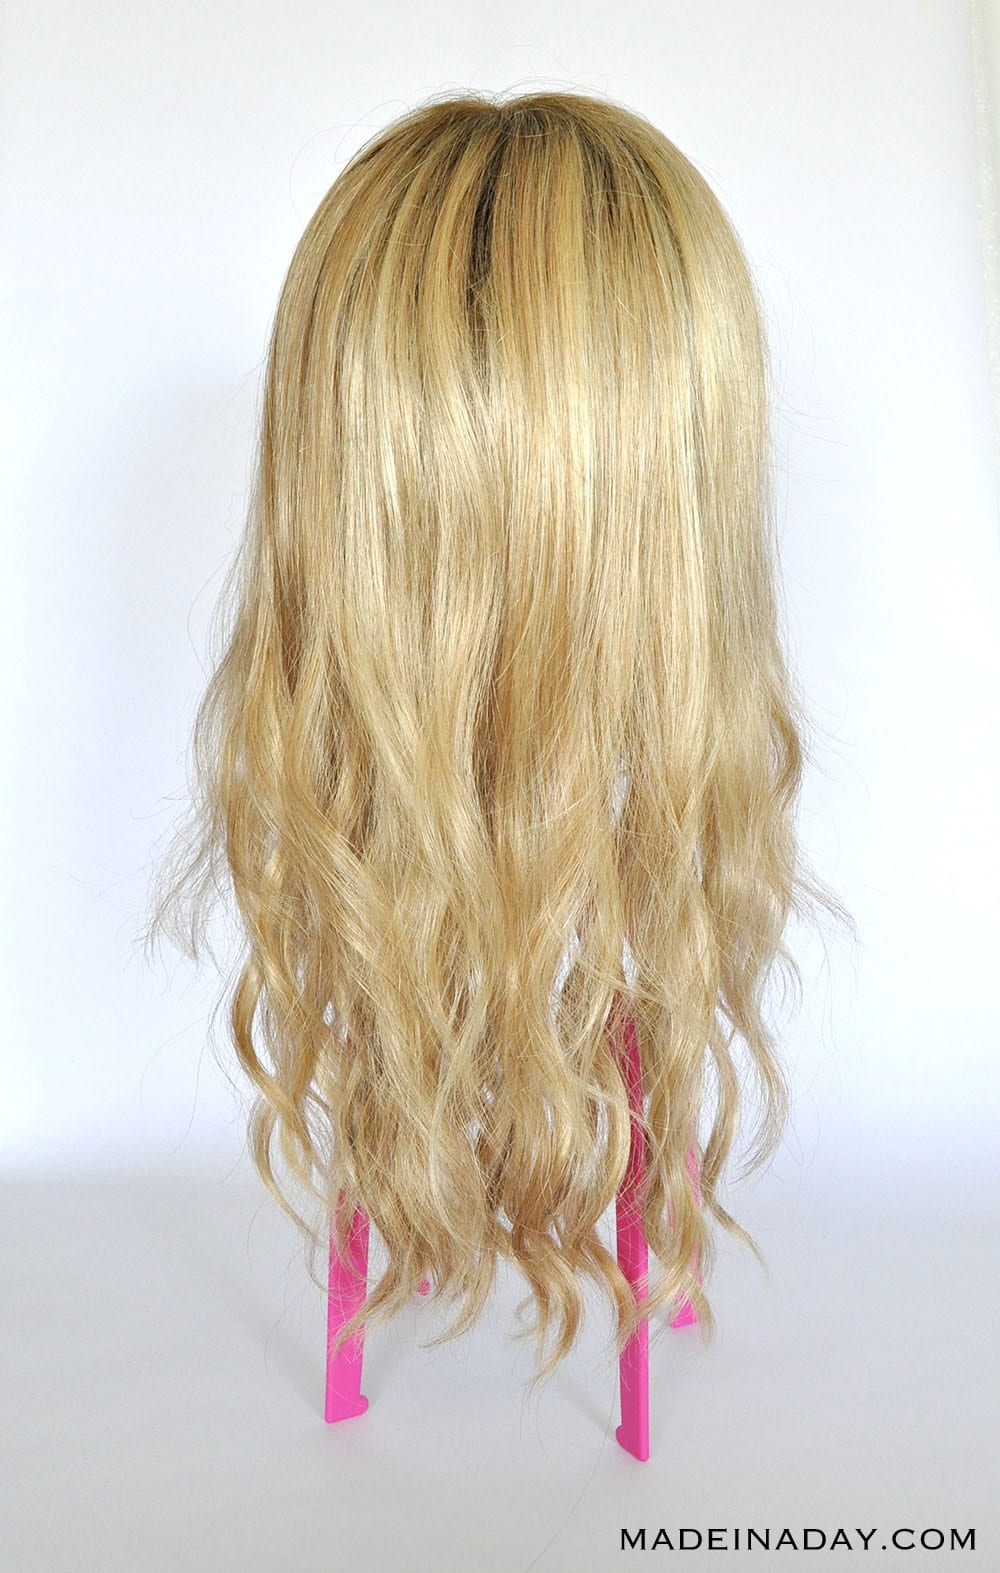 BELLE MADAME ANGELINA WIG IN COLOR DANISH BLONDE ROOT, best natural looking wigs